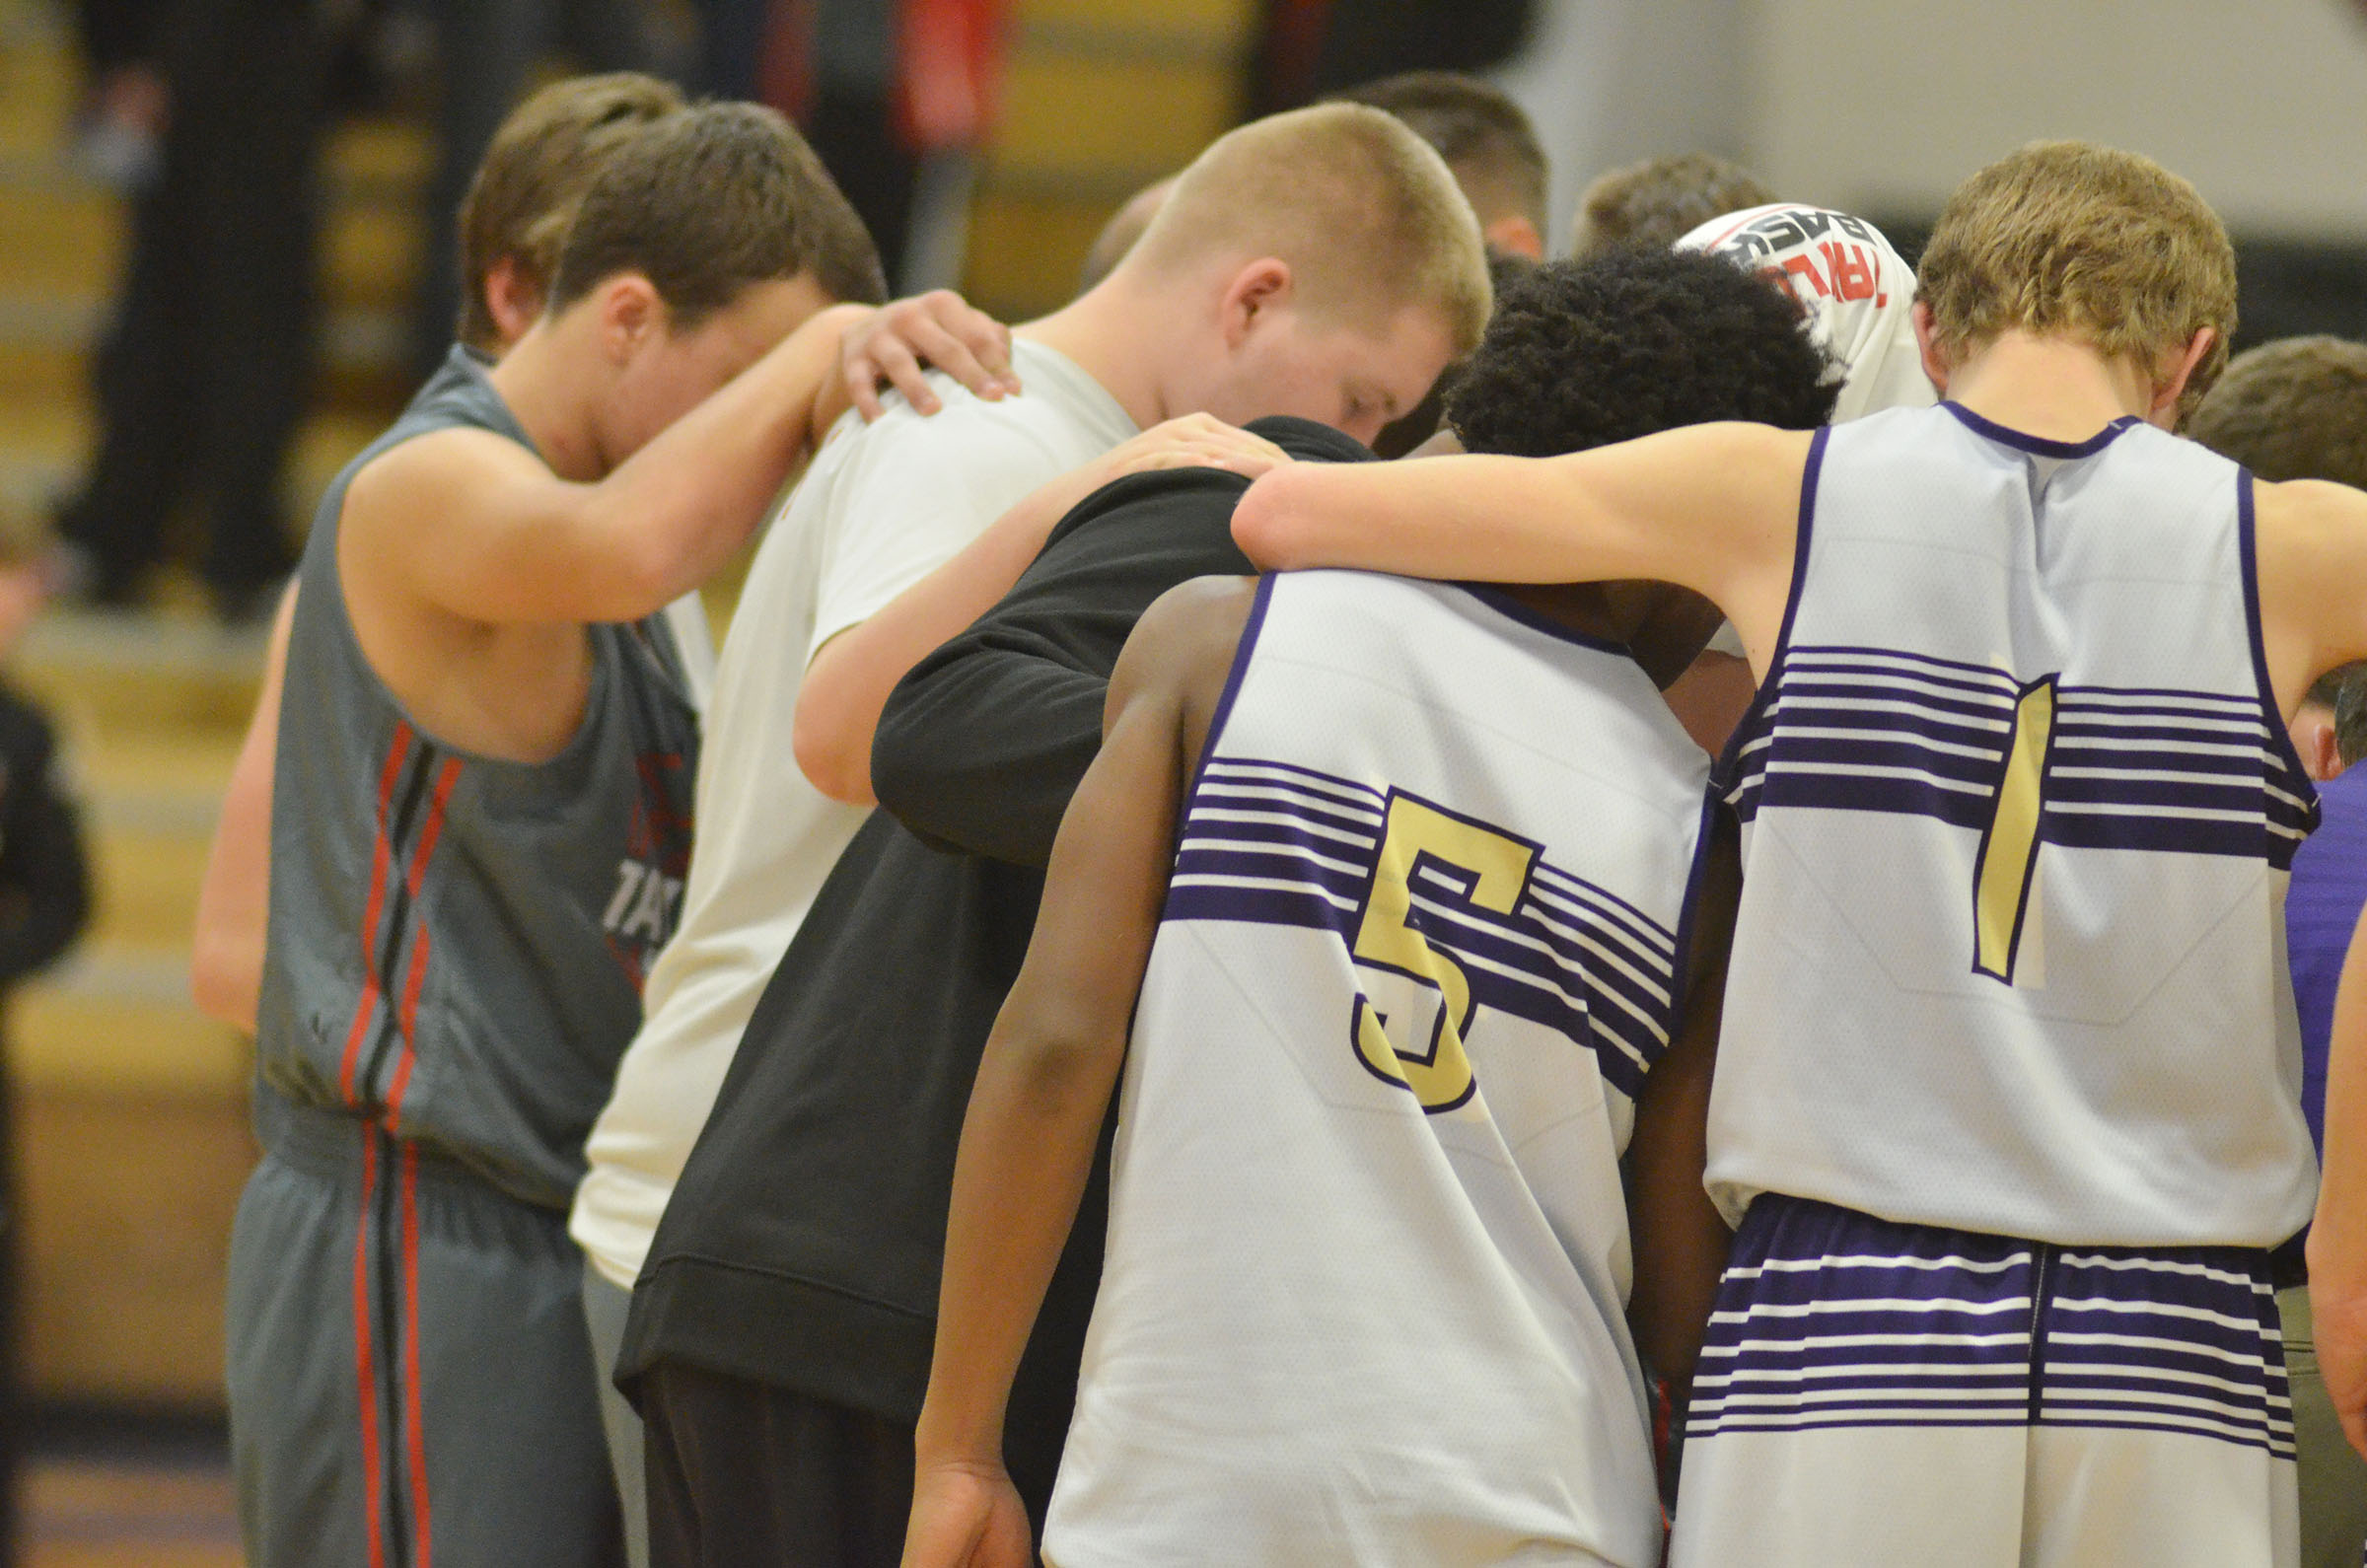 After the game, CMS and TCMS players gather to pray together.